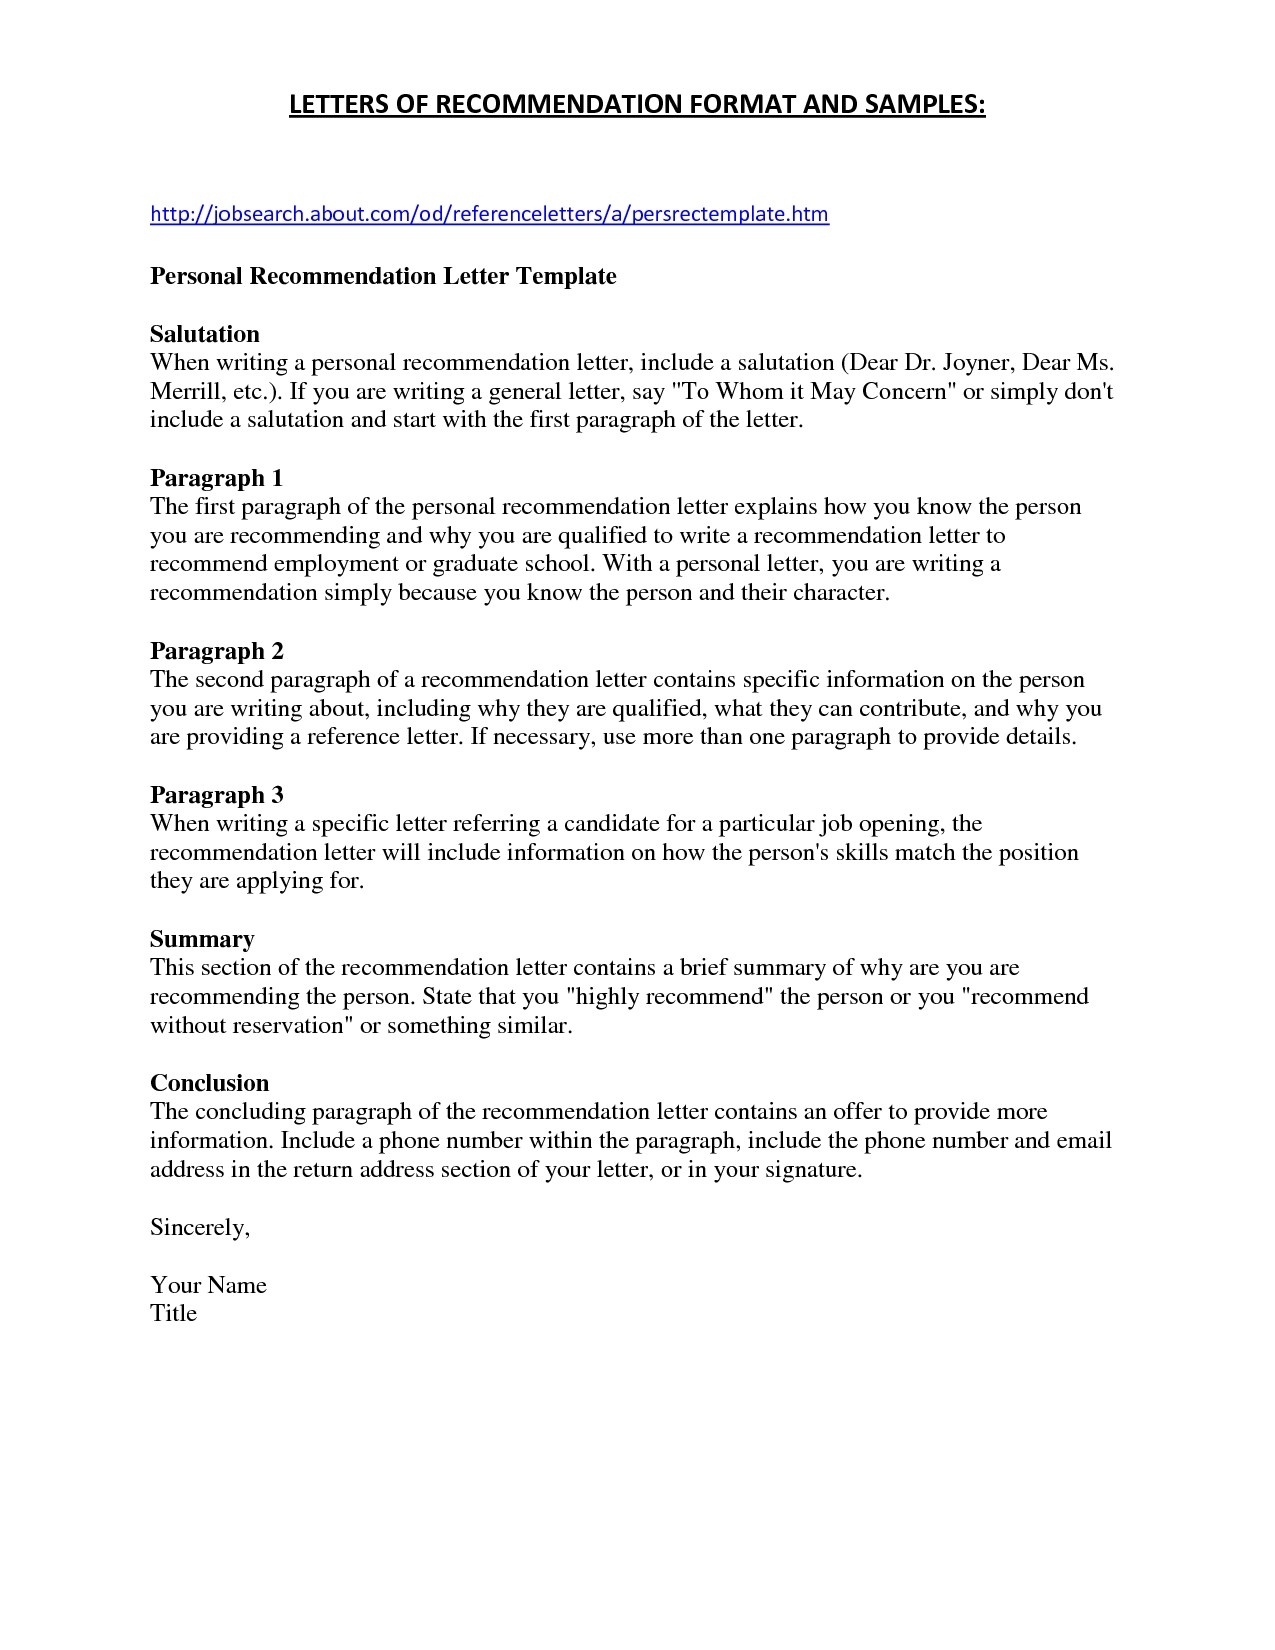 Scholarship Letter Of Recommendation Template - Re Mendation Letter for Nursing School Scholarship Awesome